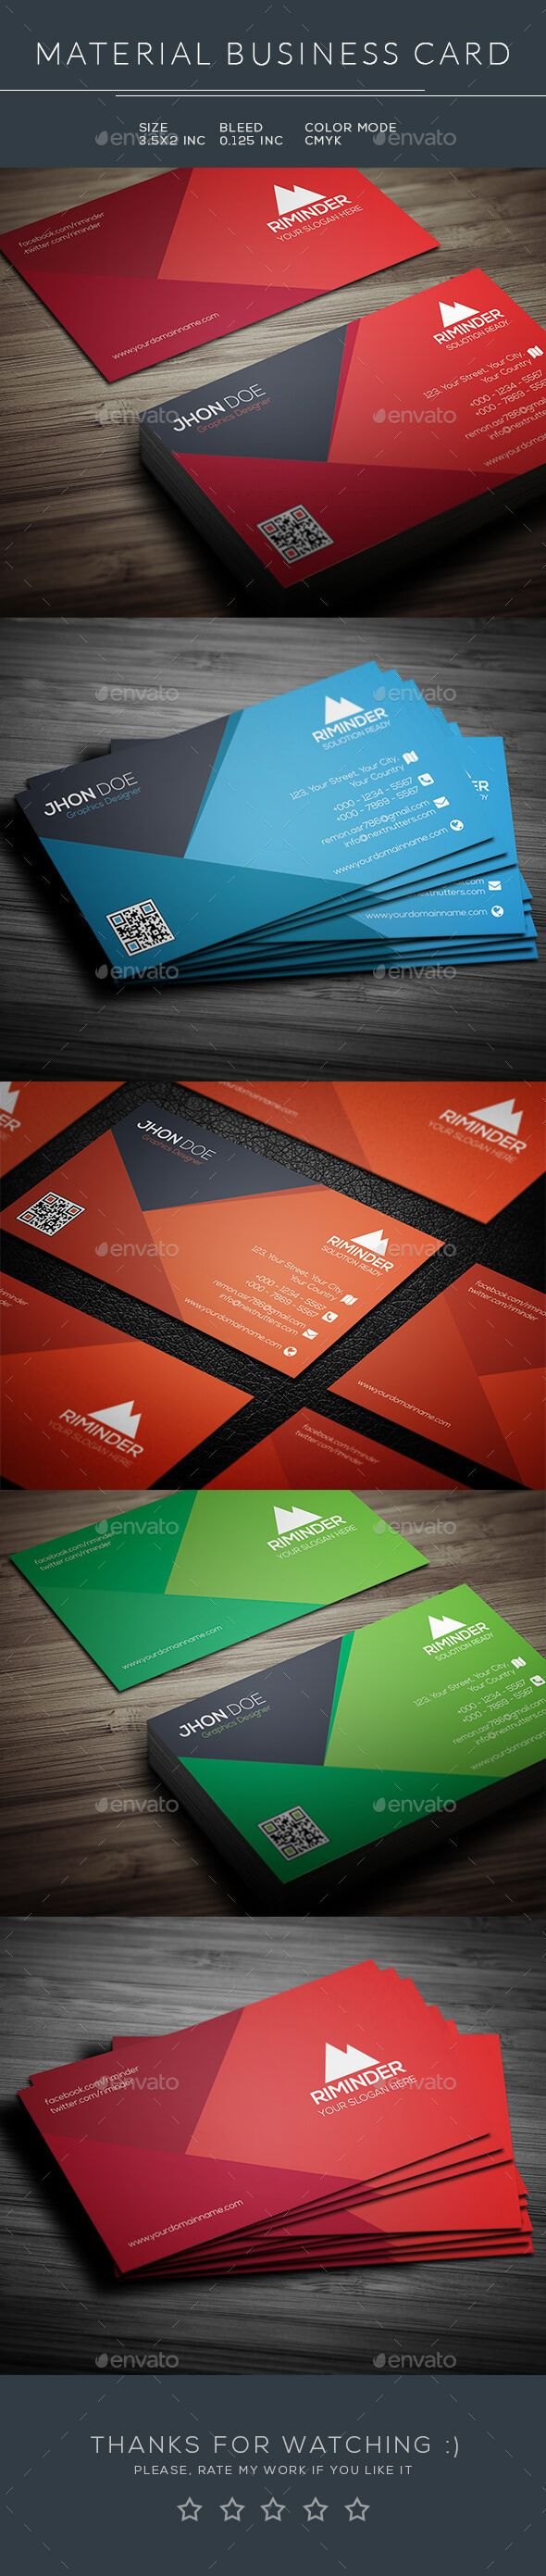 Material business card print templates business cards and template material business card photoshop psd print template modern template available here flashek Gallery